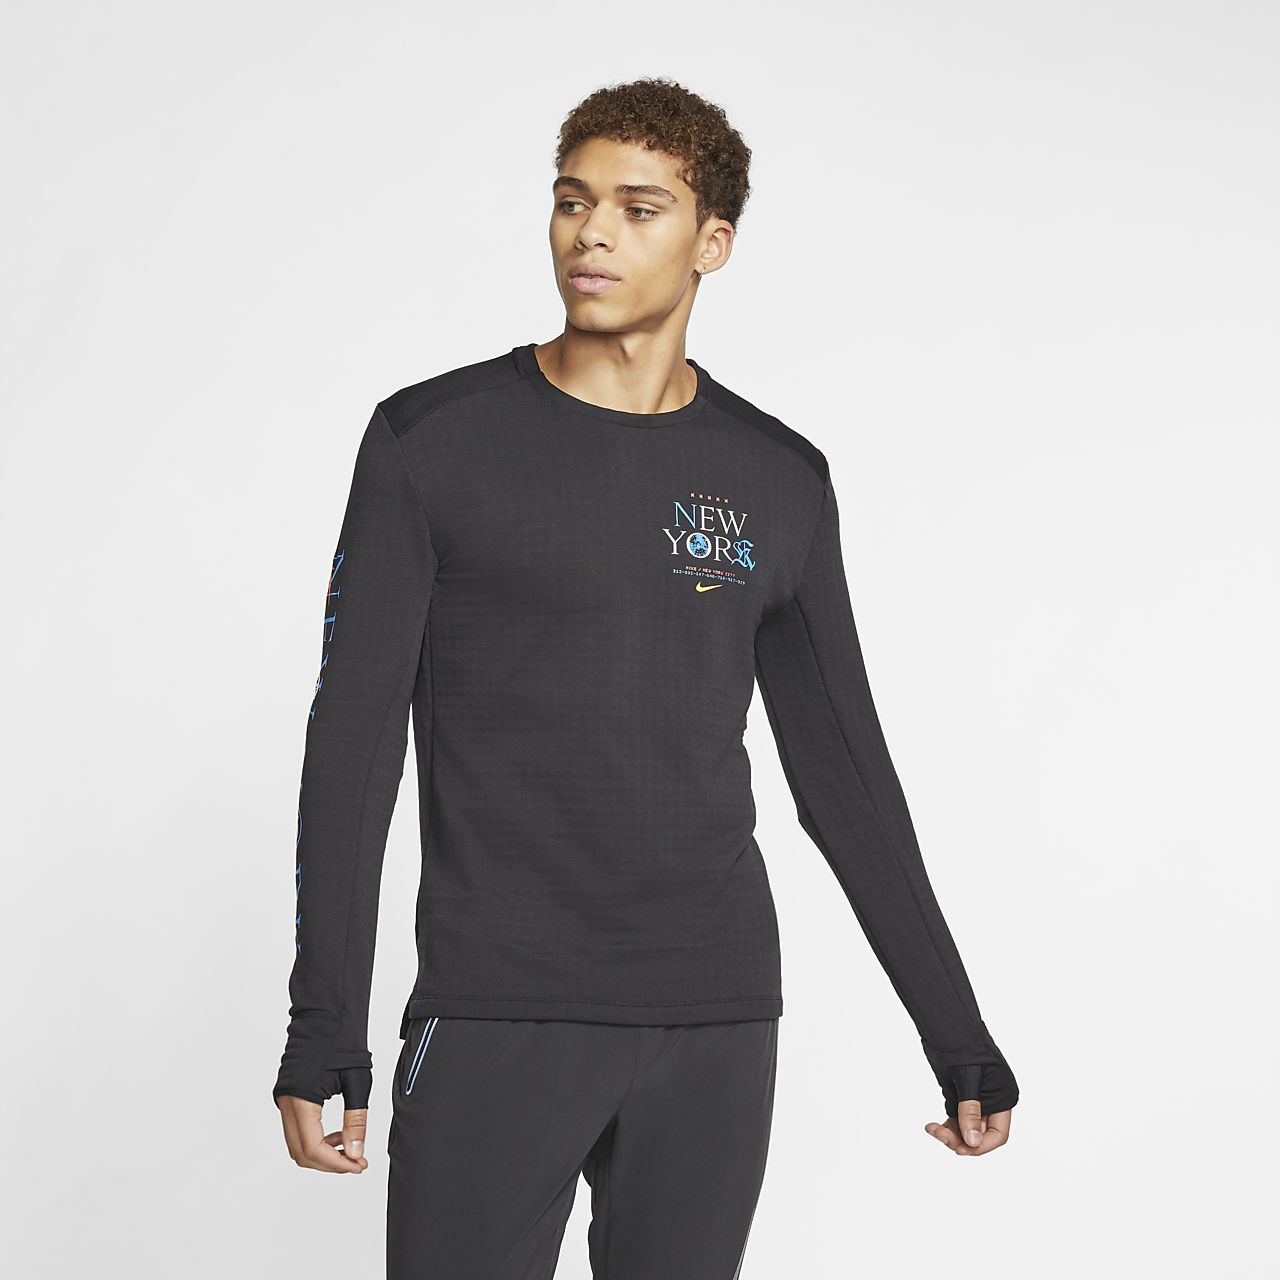 Haut de running à manches longues Nike Therma Sphere 3.0 NYC pour Homme